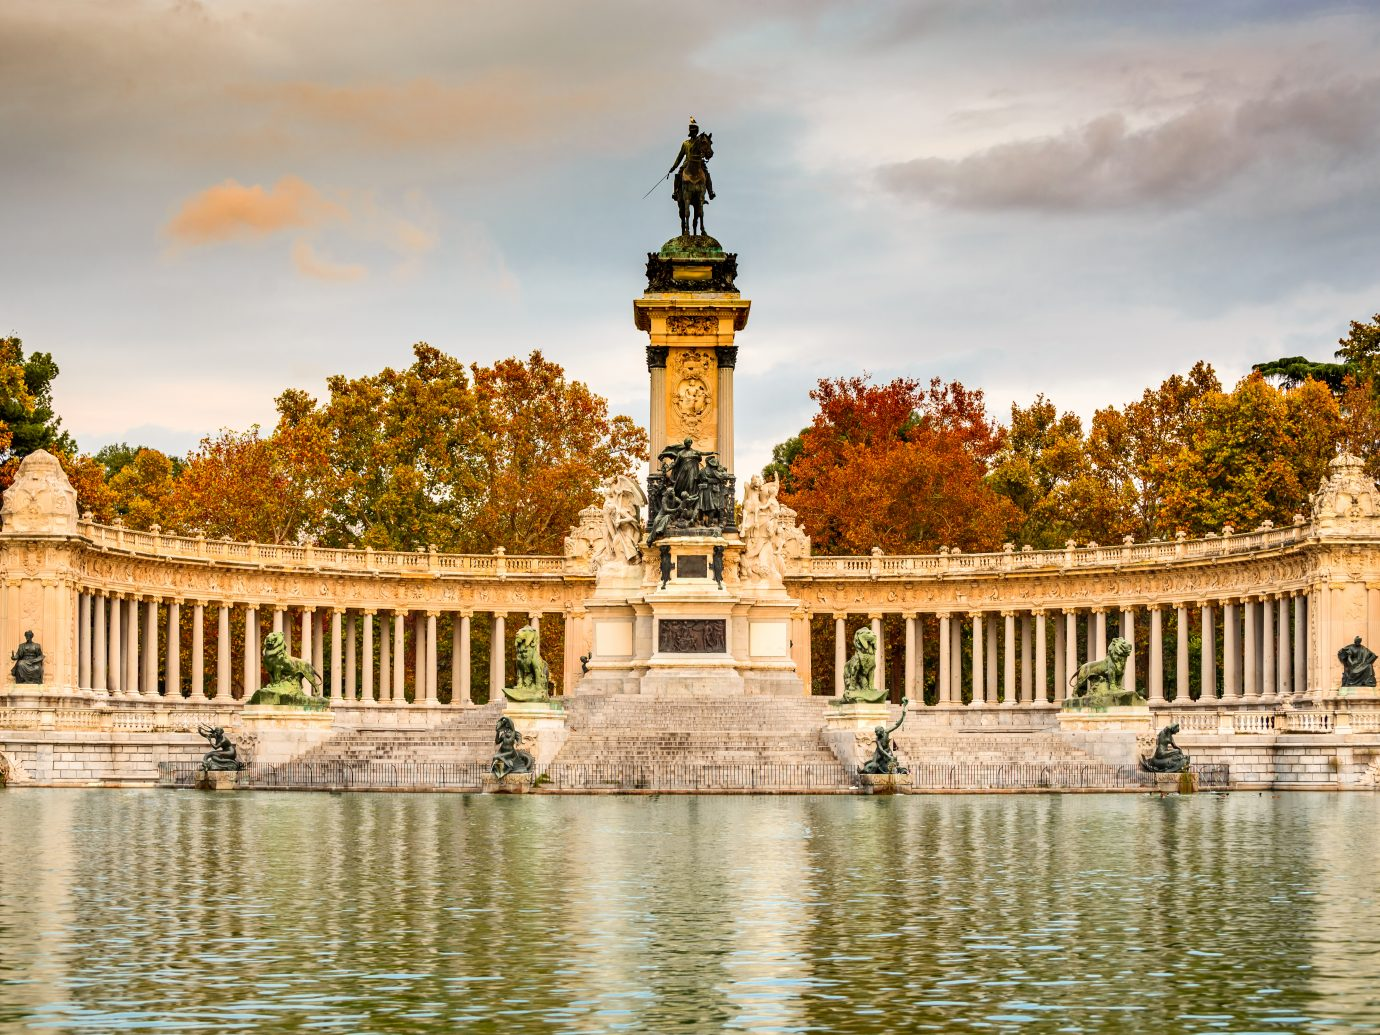 Madrid, Spain. Buen Retiro park, outdoor natural landmark of Spanish capital city.